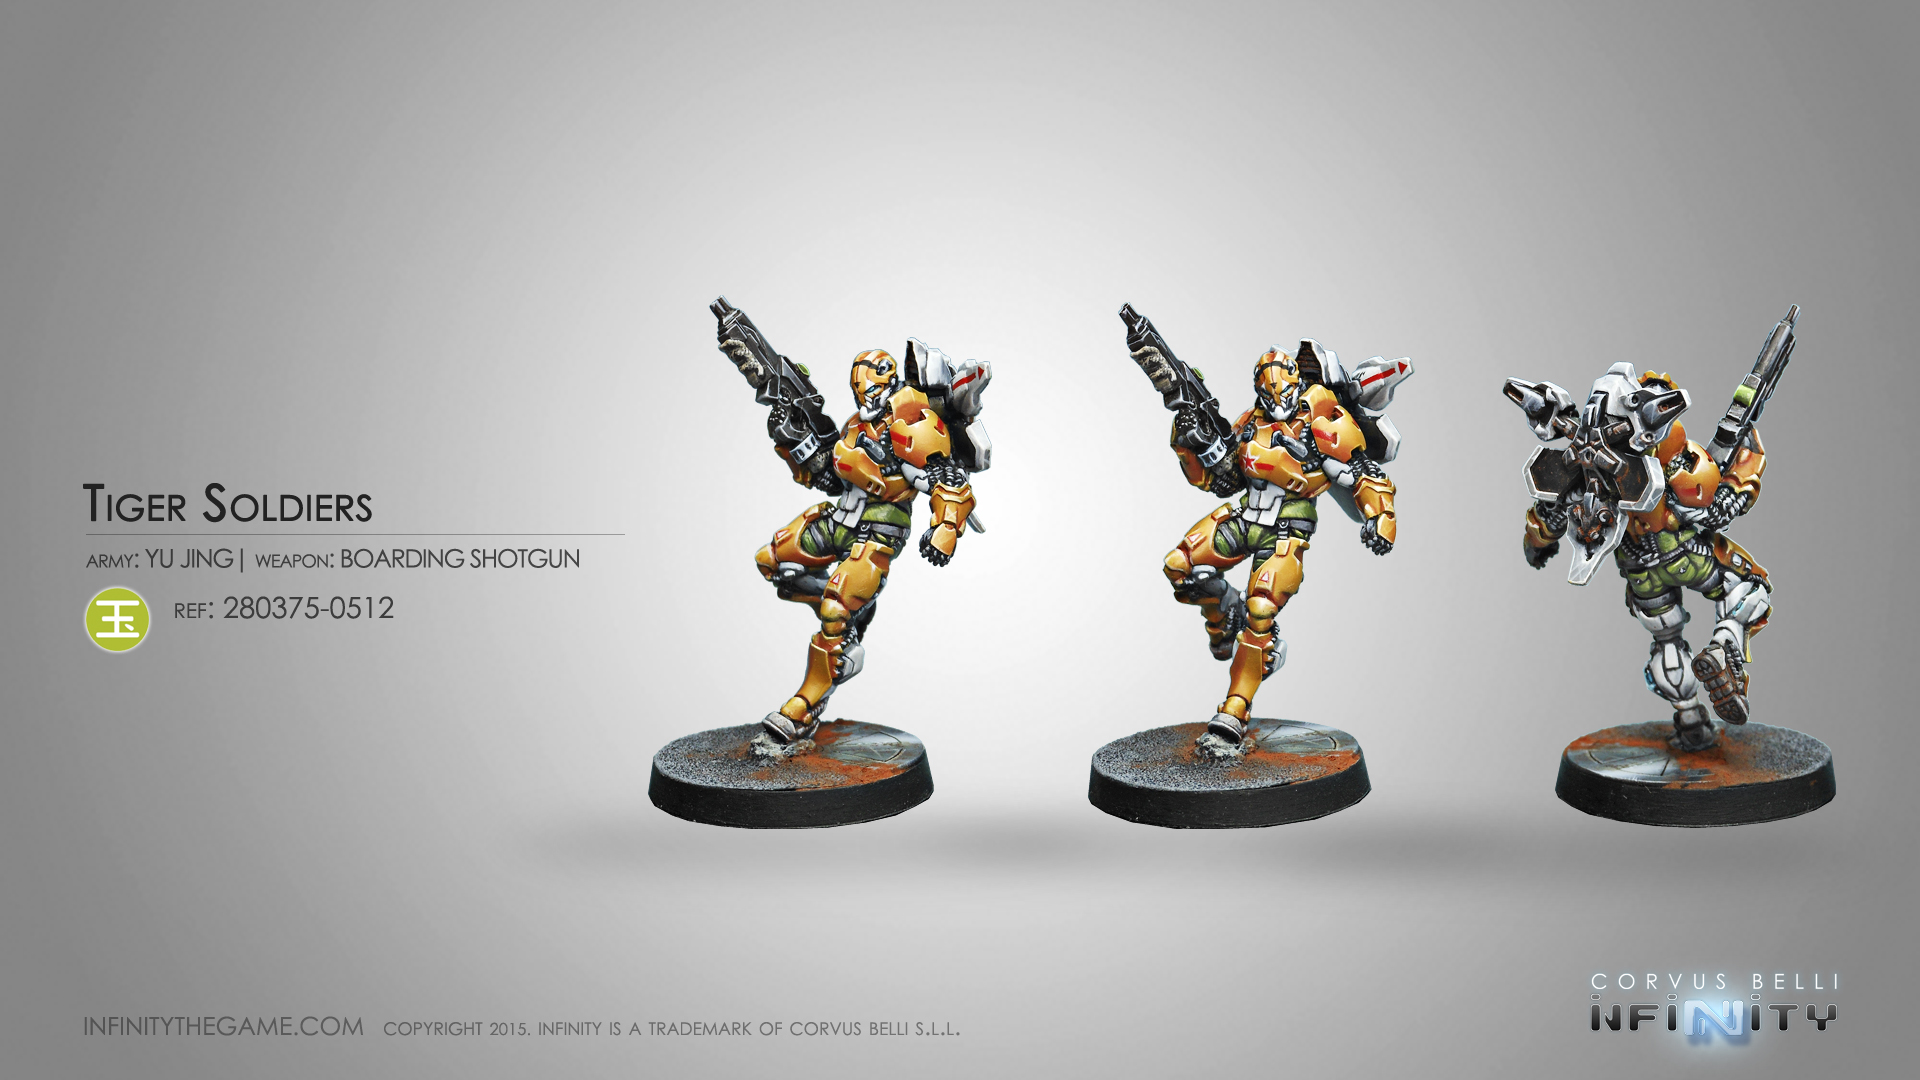 Yu Jing: Tiger Soldier (Boarding Shotgun)